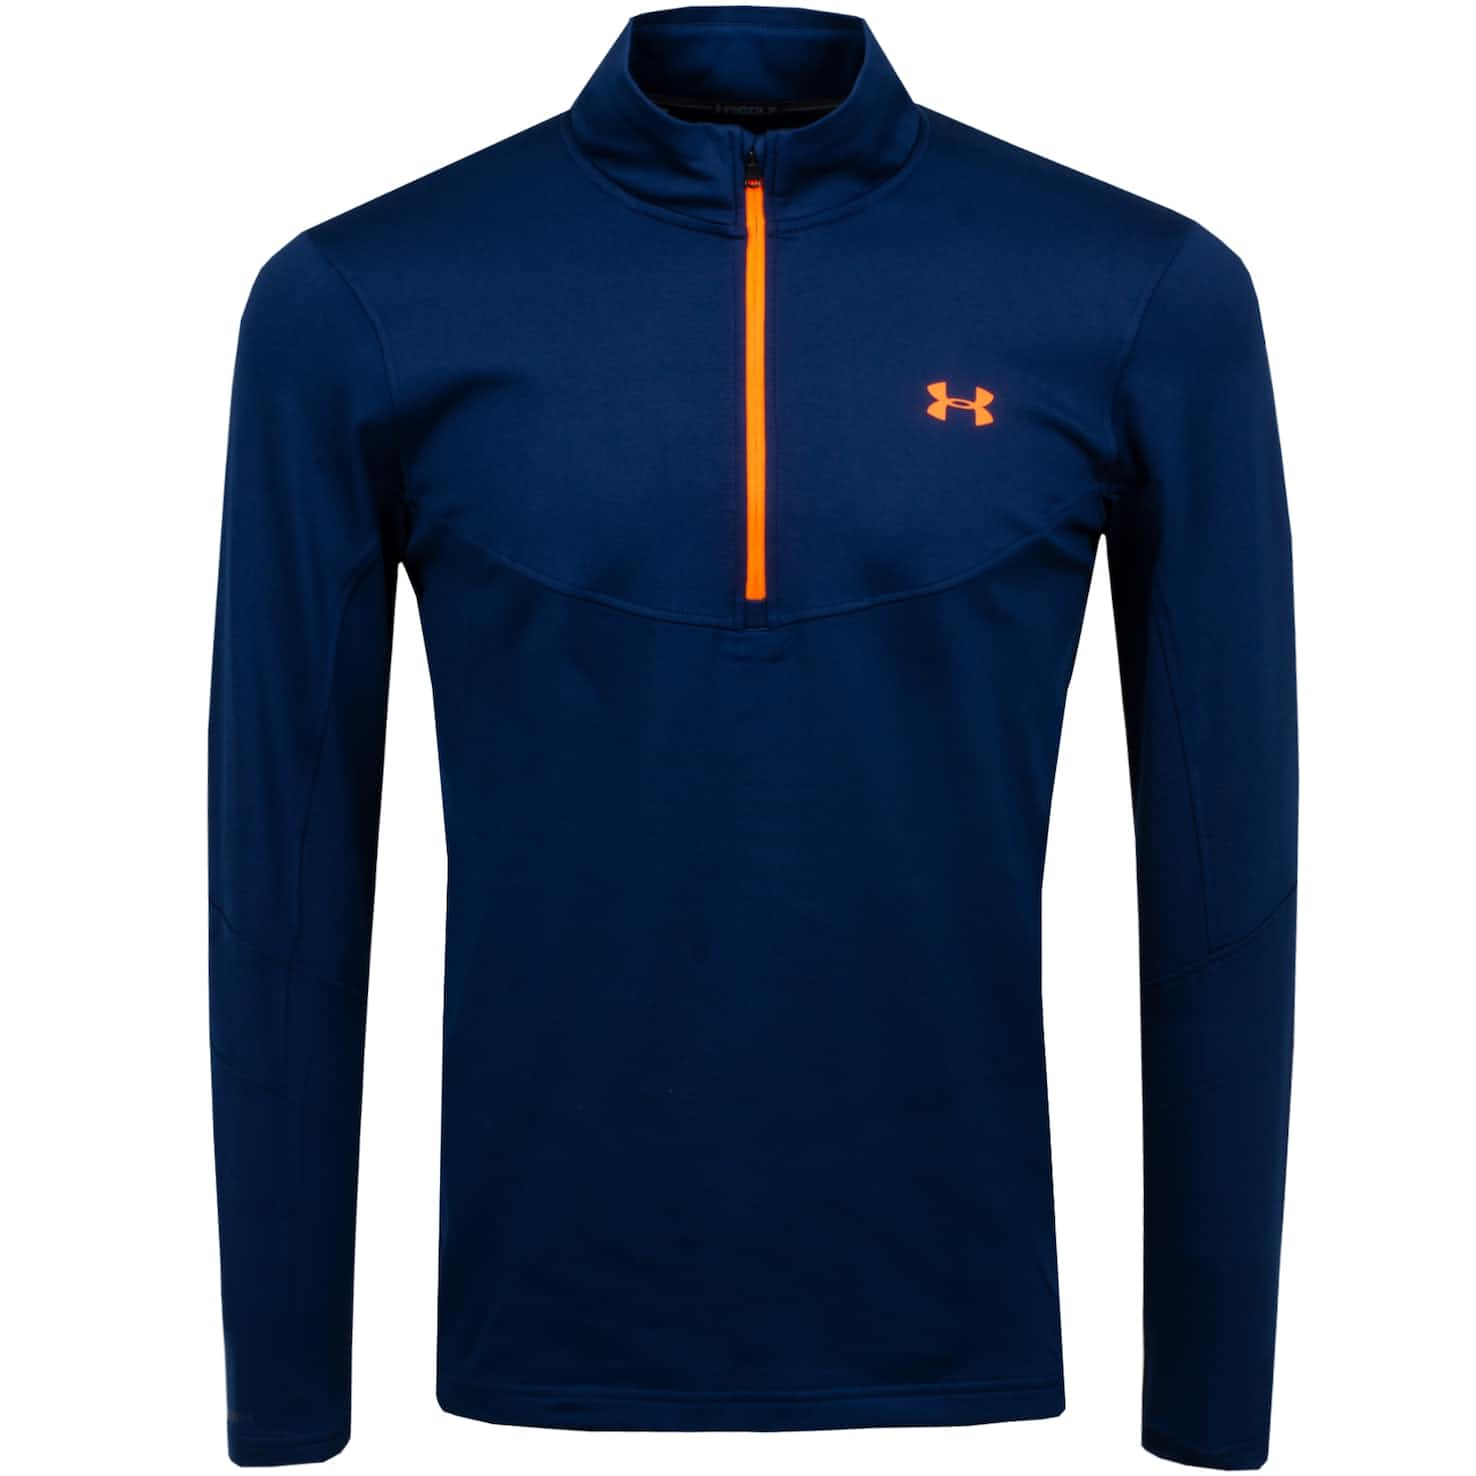 Storm Mid Layer Half Zip Academy/Orange Spark - SS20